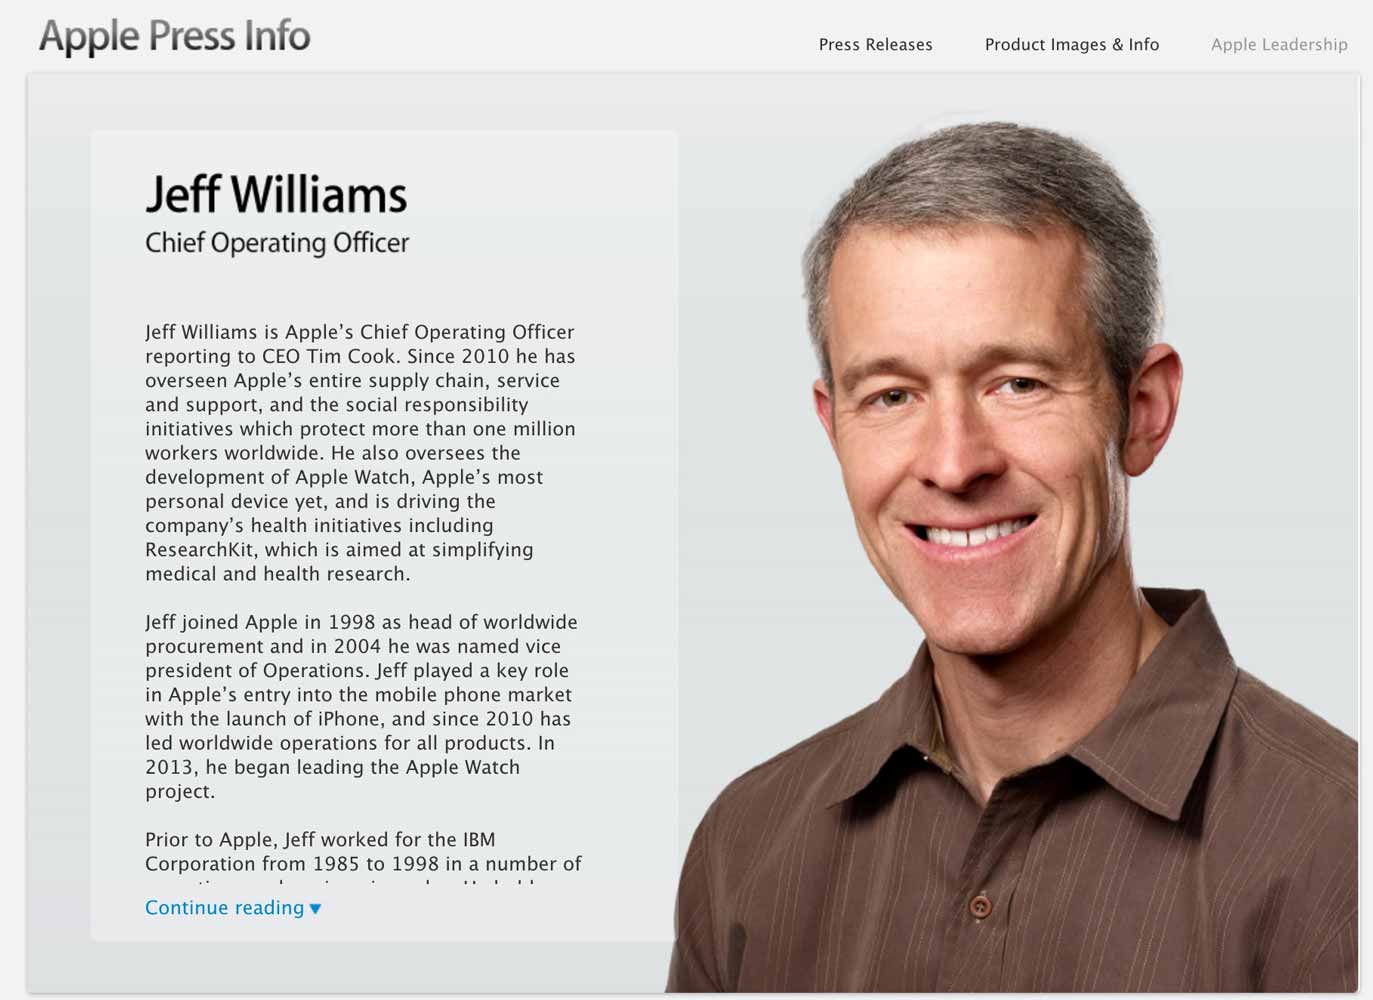 Apple、Jeff Williams氏がChief Operating Officer(COO)に就任したことを発表